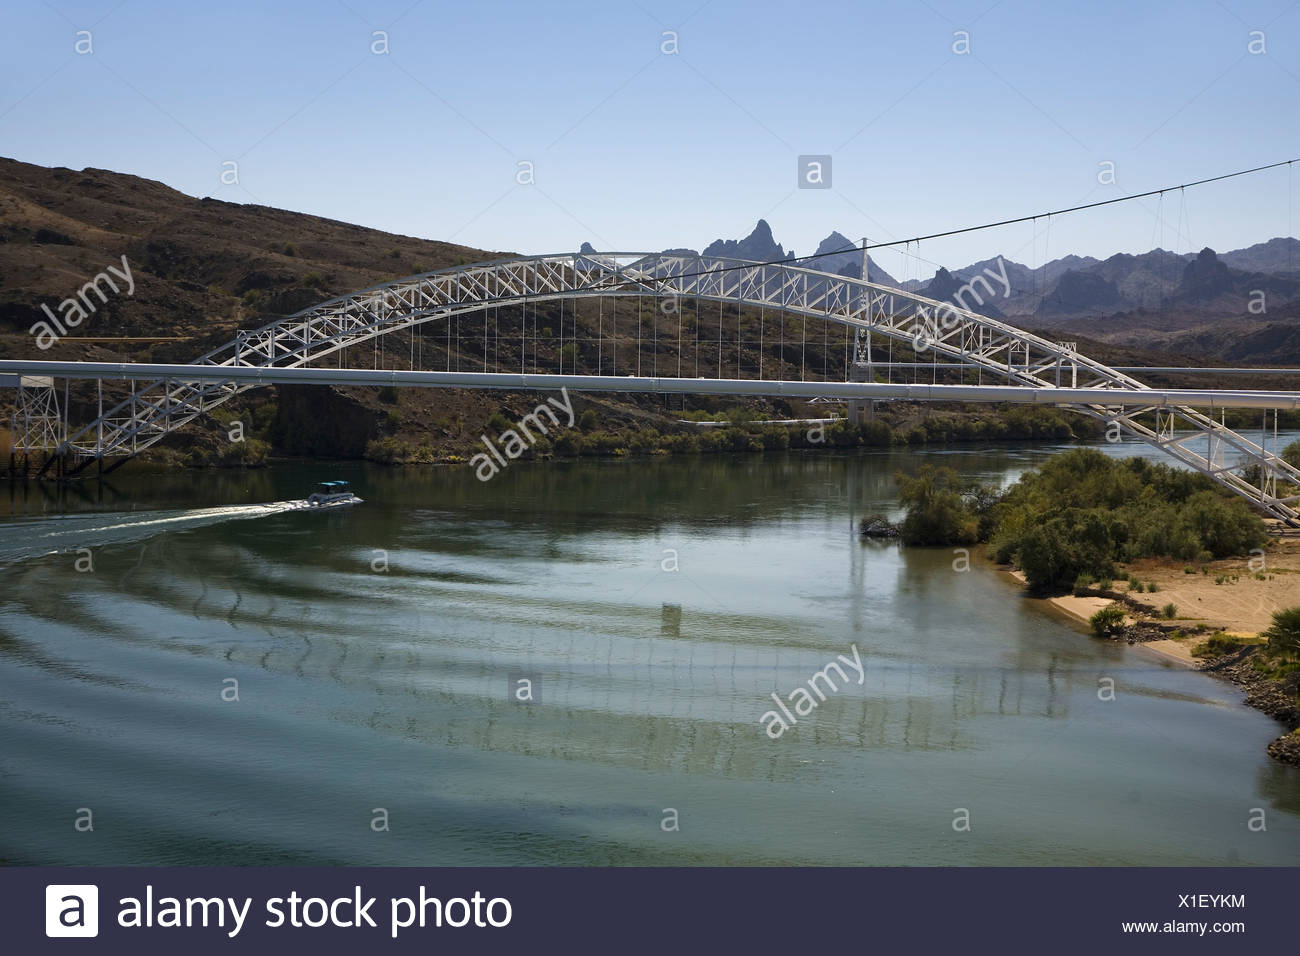 Bridge crossing Colorado River with turquoise color water from